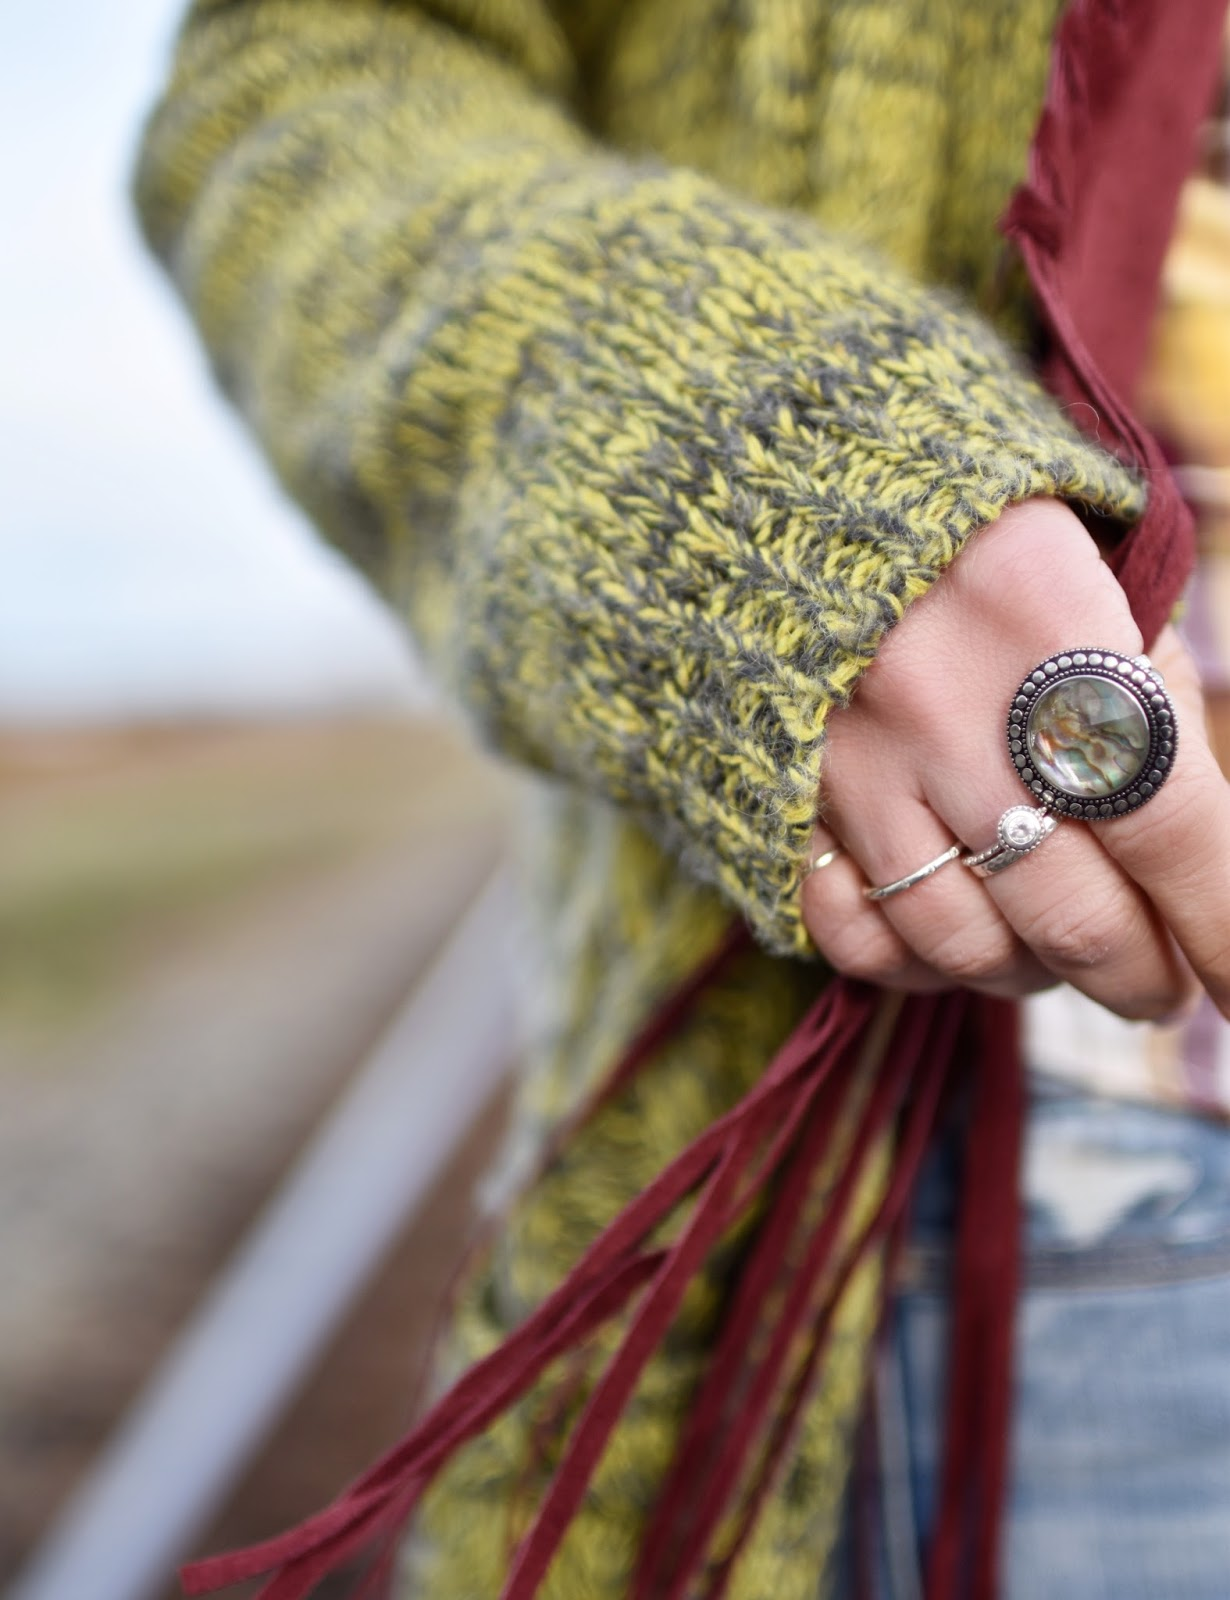 Monika Faulkner outfit inspiration - fringy vest, chartreuse marled cardigan, statement ring